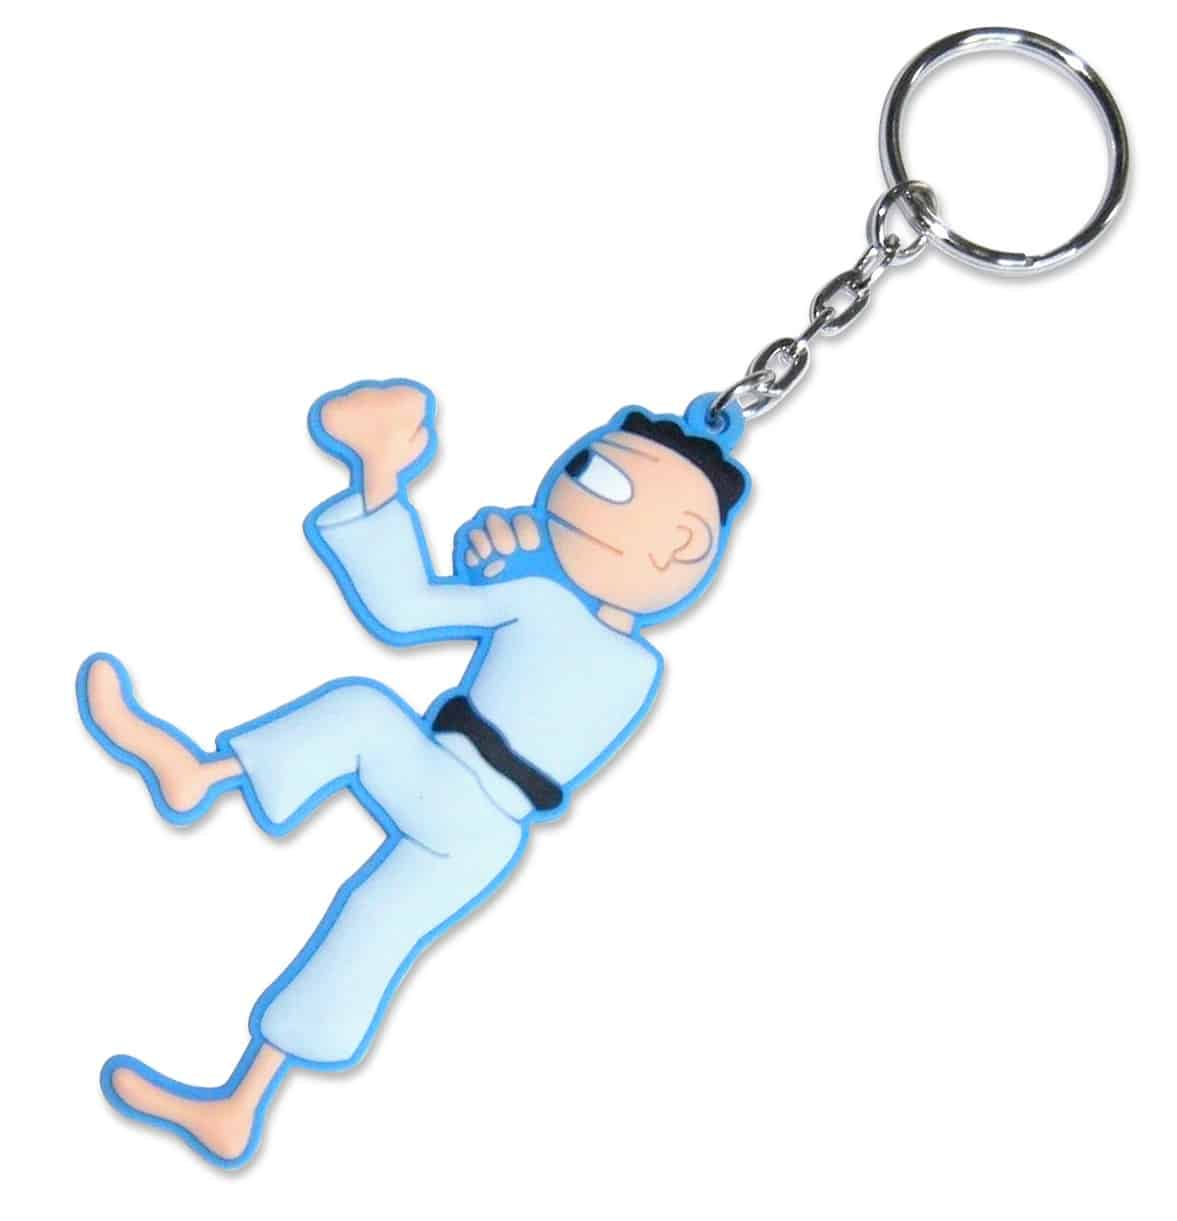 Custom rubber keyring in the shape of a ninja figure person.